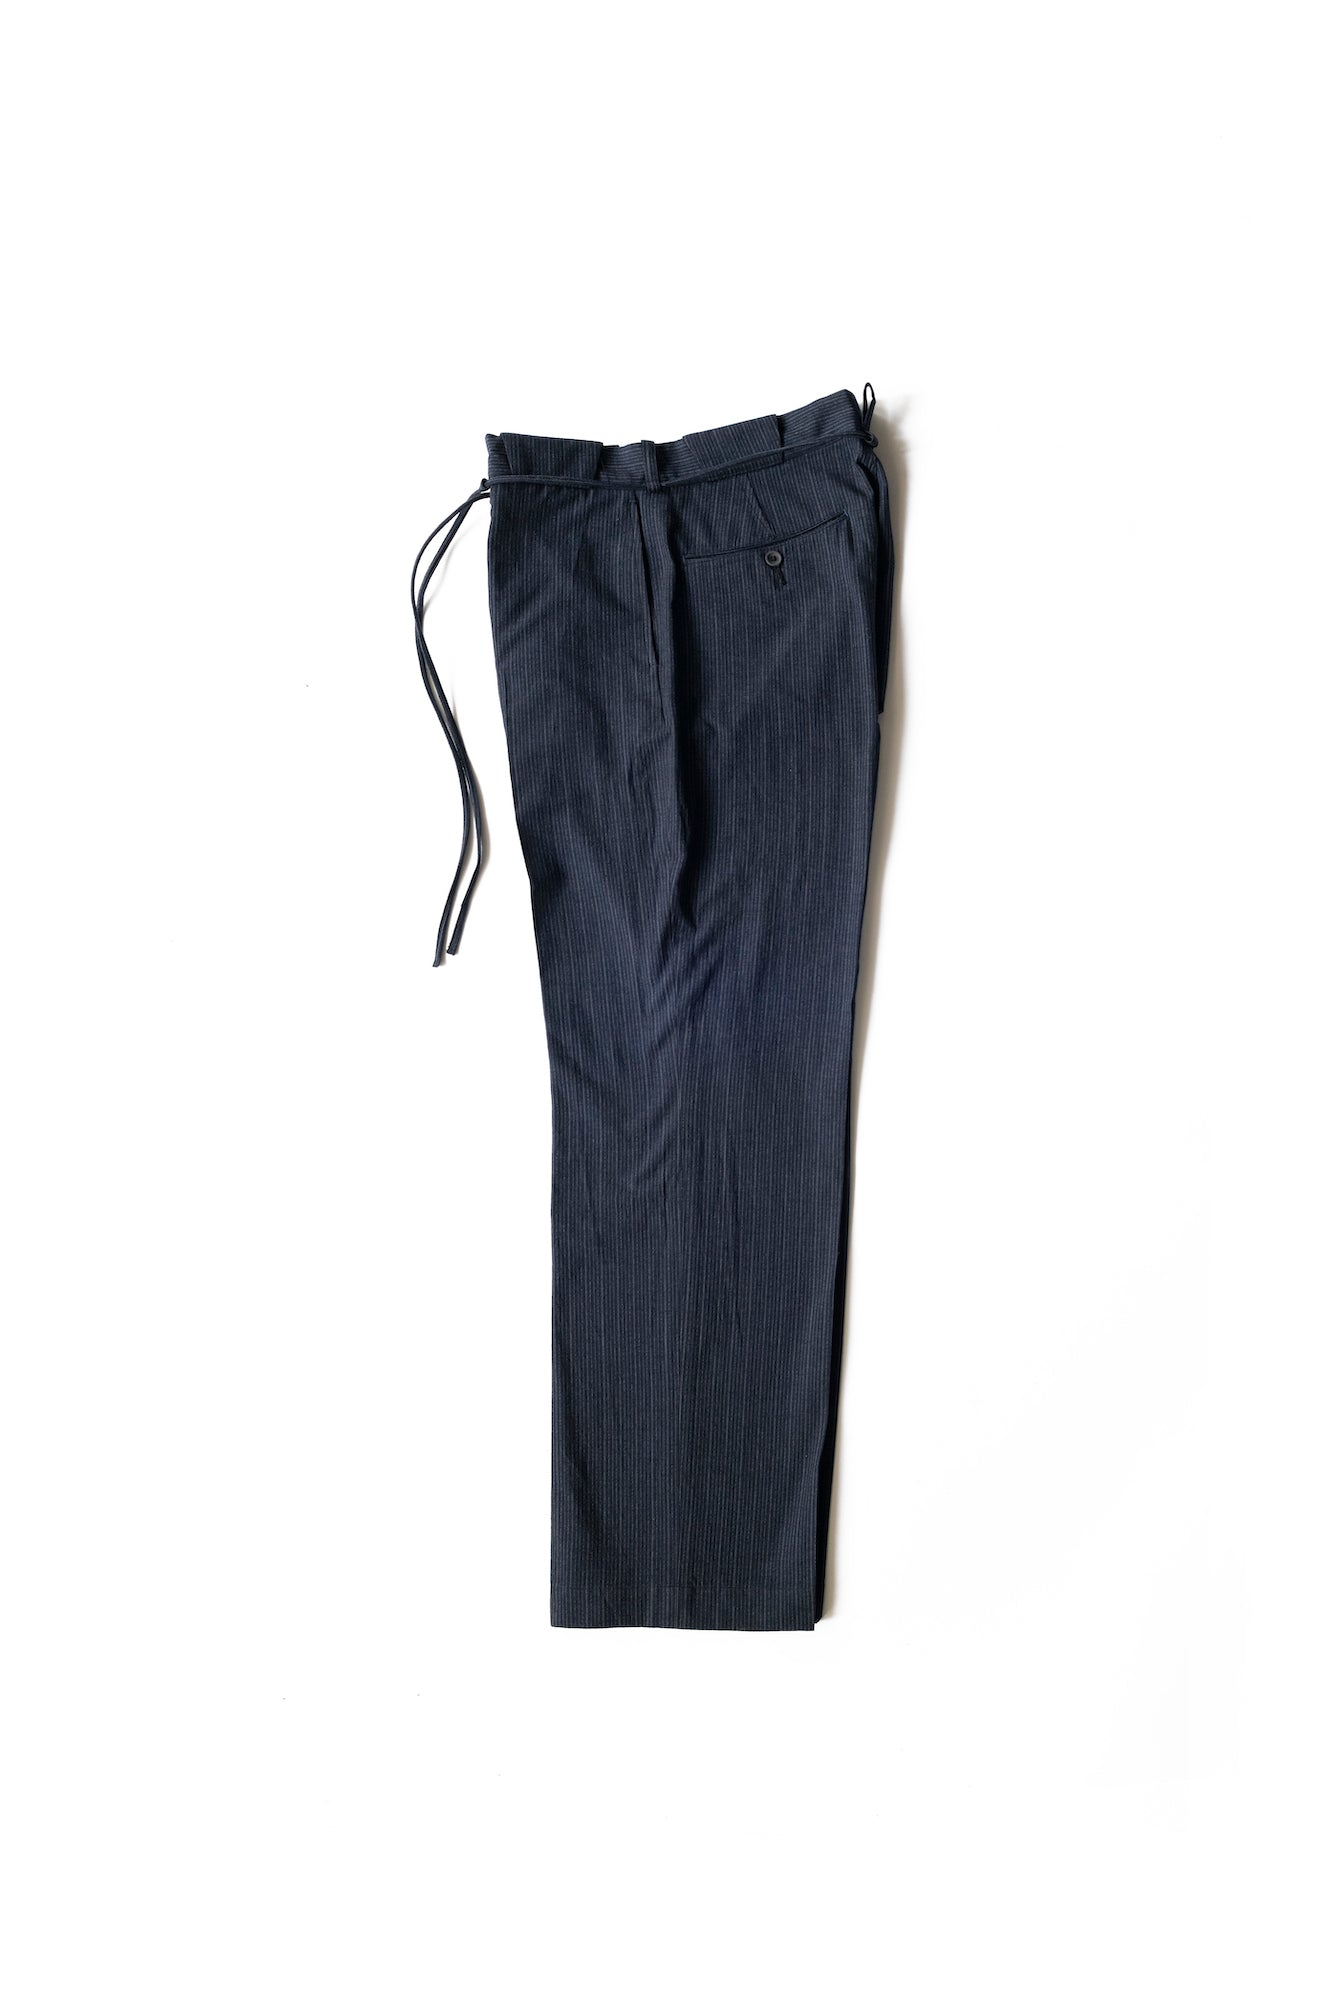 STRING WAIST WORK TROUSER - 211OJ-PT13